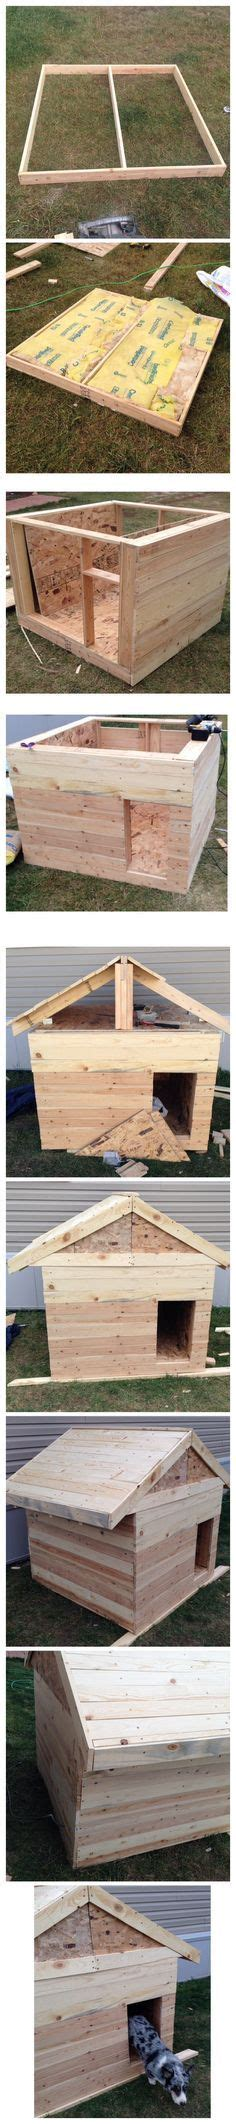 build a heated dog house 1000 ideas about dog house plans on pinterest free dogs dog houses and dog